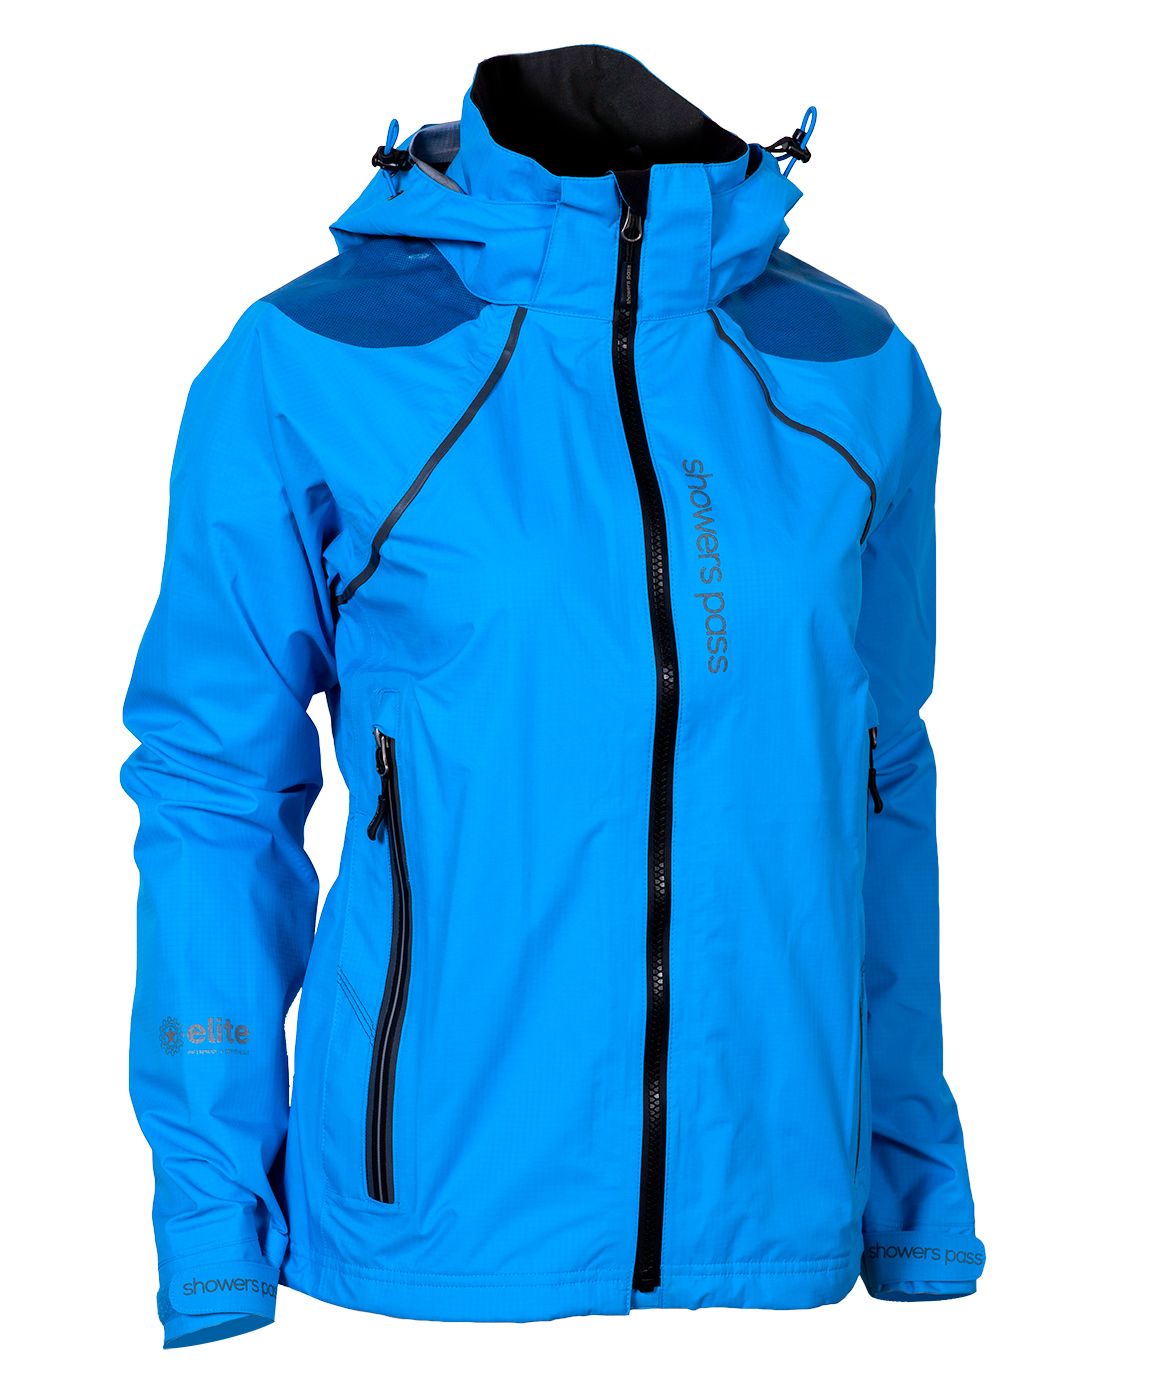 Photo by Showers Pass: Women's Refuge Jacket